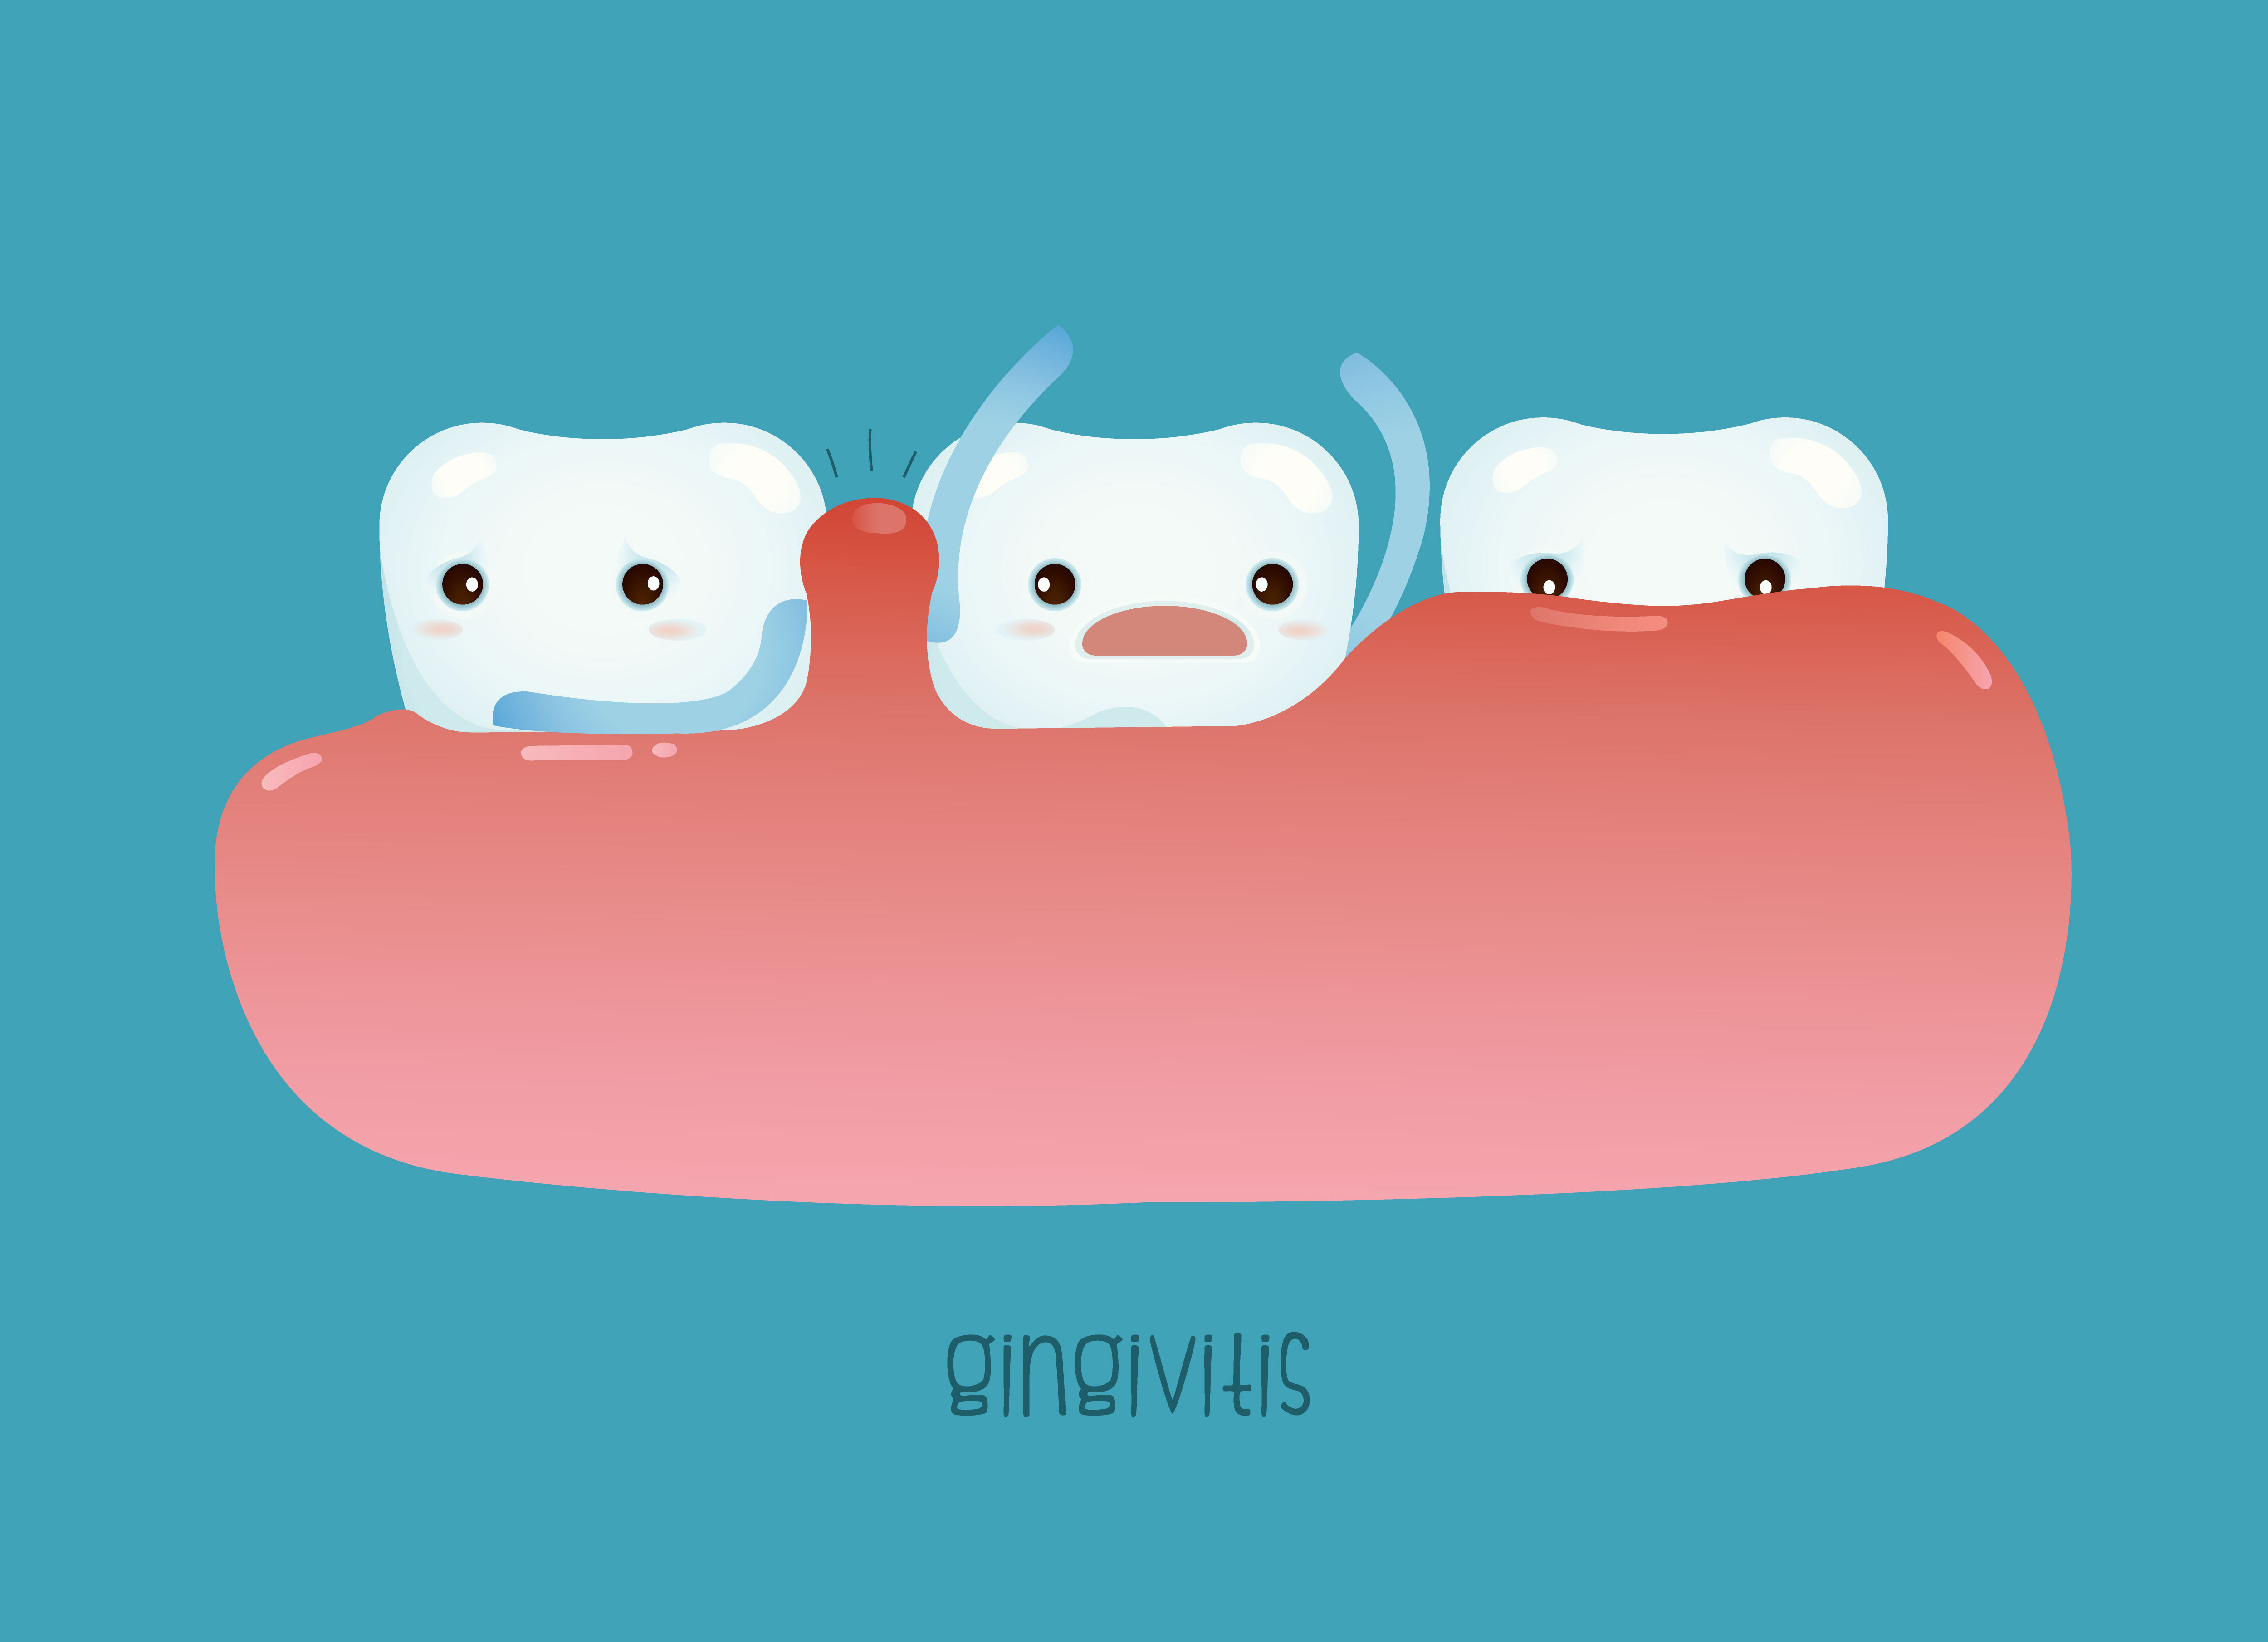 Everything You Need To Know About Gingivitis The Teal